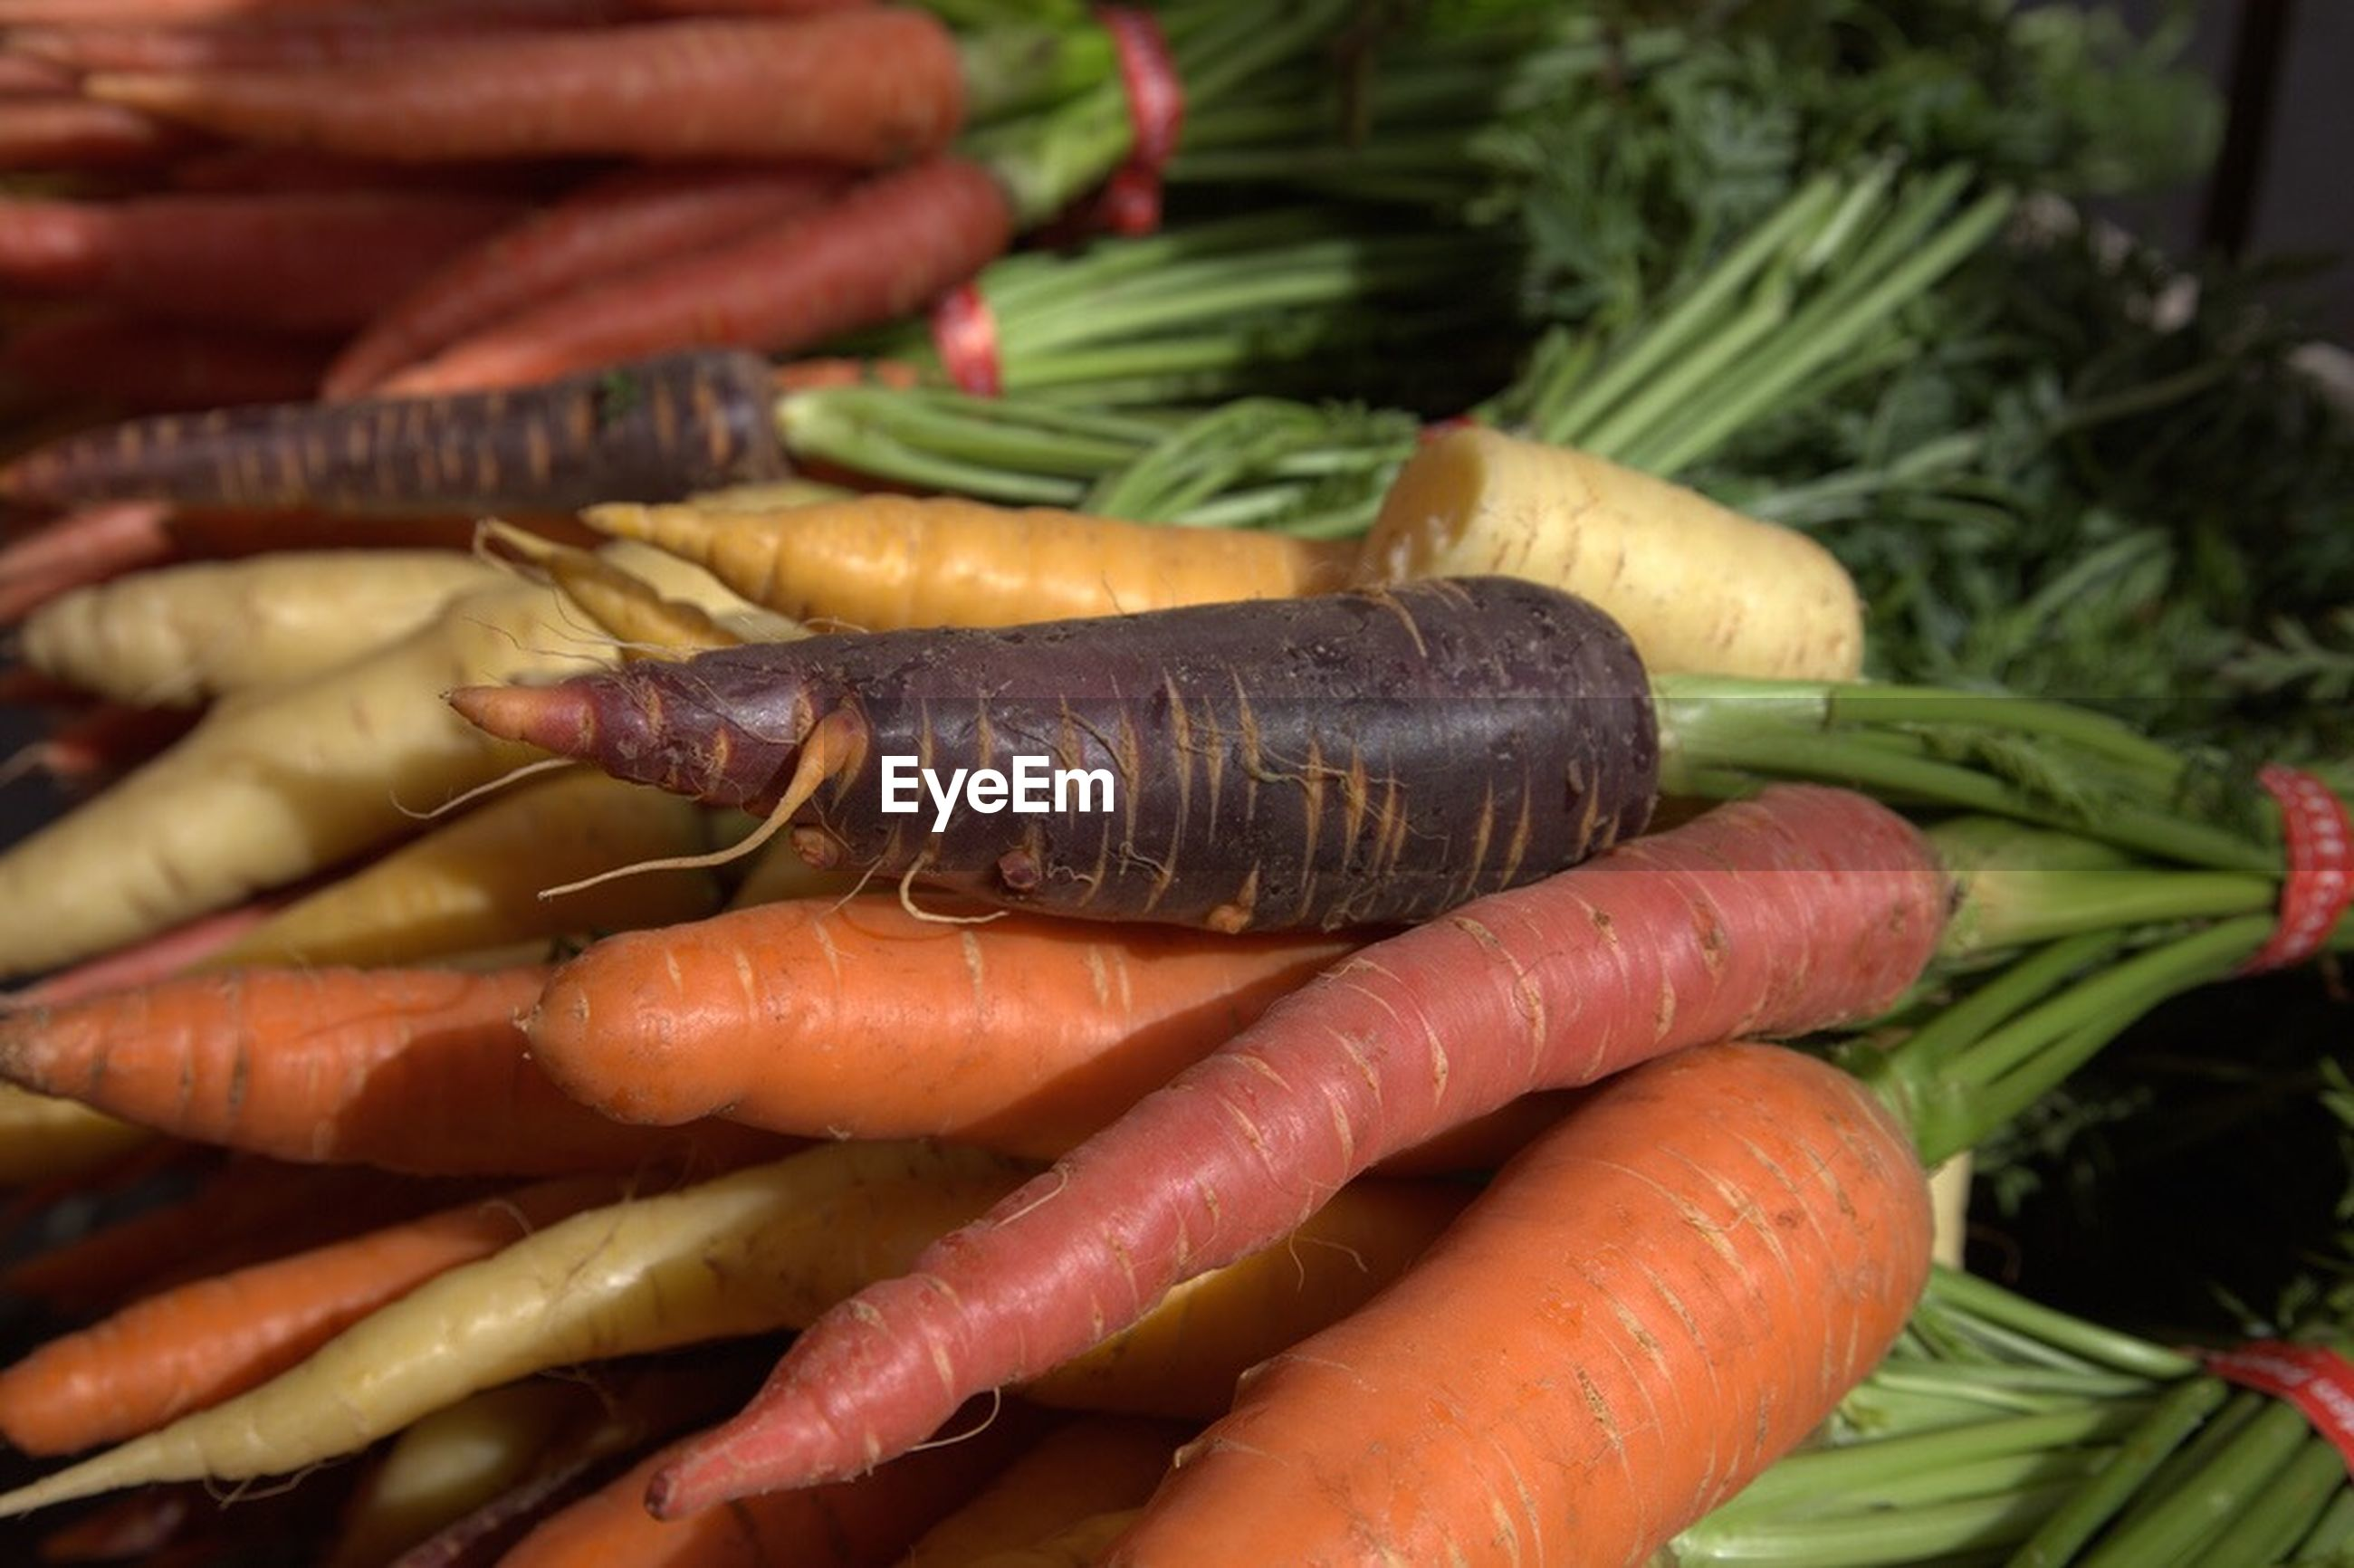 Close-up of carrots displayed at market stall